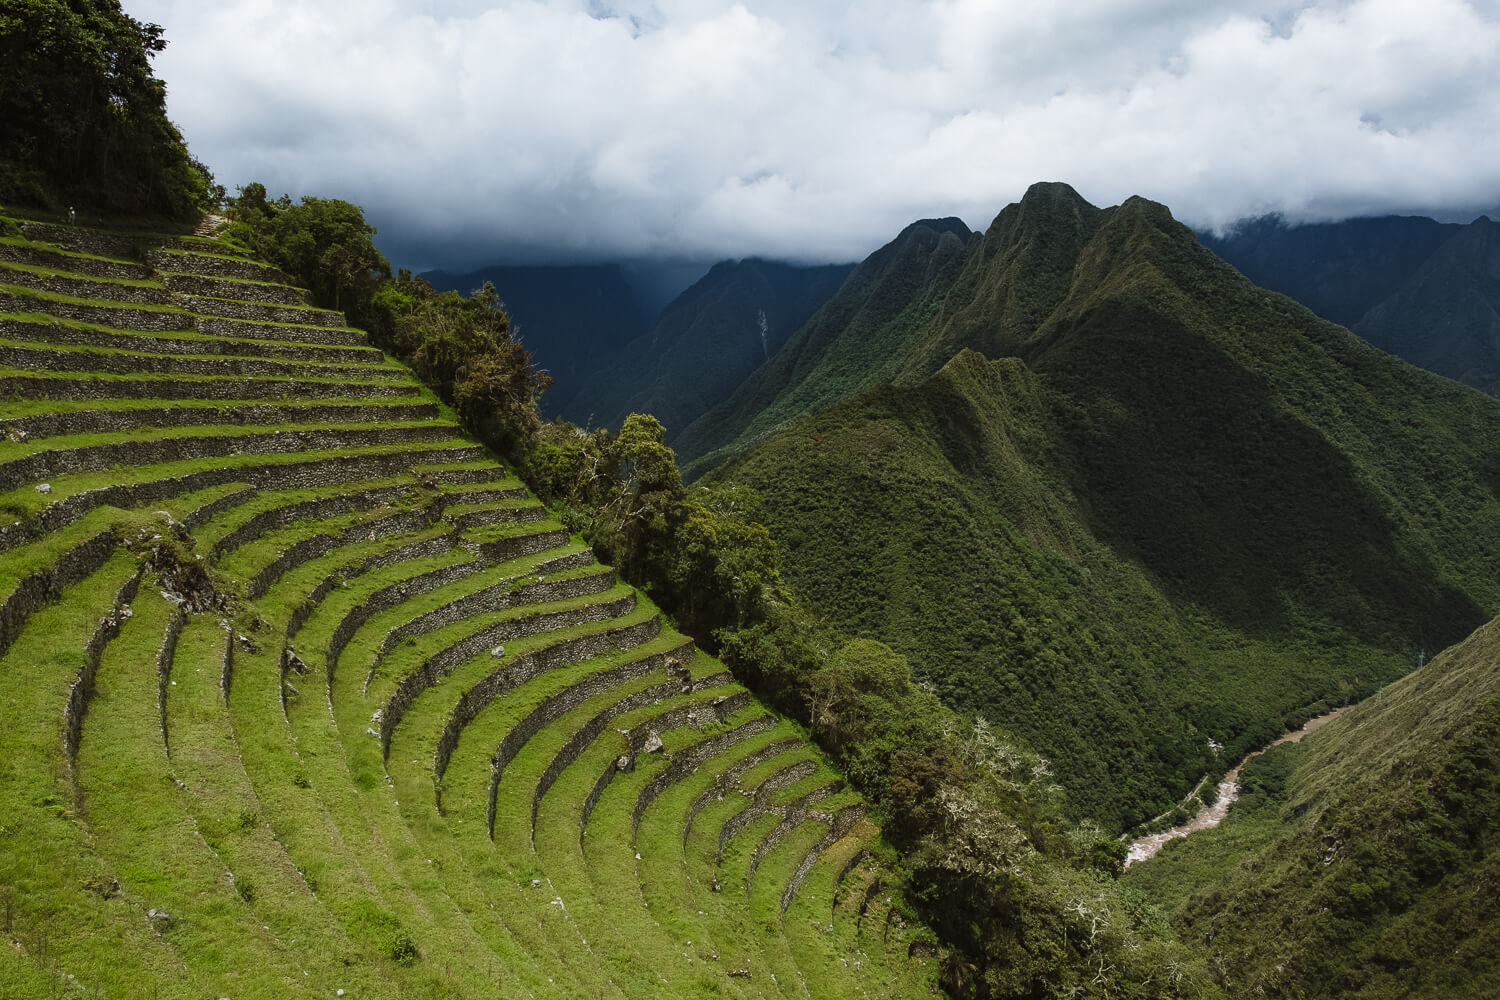 "Terraces of Winay Wayna. Travel photography and guide by © Natasha Lequepeys for ""And Then I Met Yoko"". #machupicchu #shortincatrail #2dayincatrail #incatrail #aguascalientes #sacredvalley #peru #travelguide #photoblog #travelblog #travelphotography #landscapephotography #travelitinerary #machupicchuitinerary #fujifilm #southamerica #visitperu #dayhike #ancientruins #hiking"